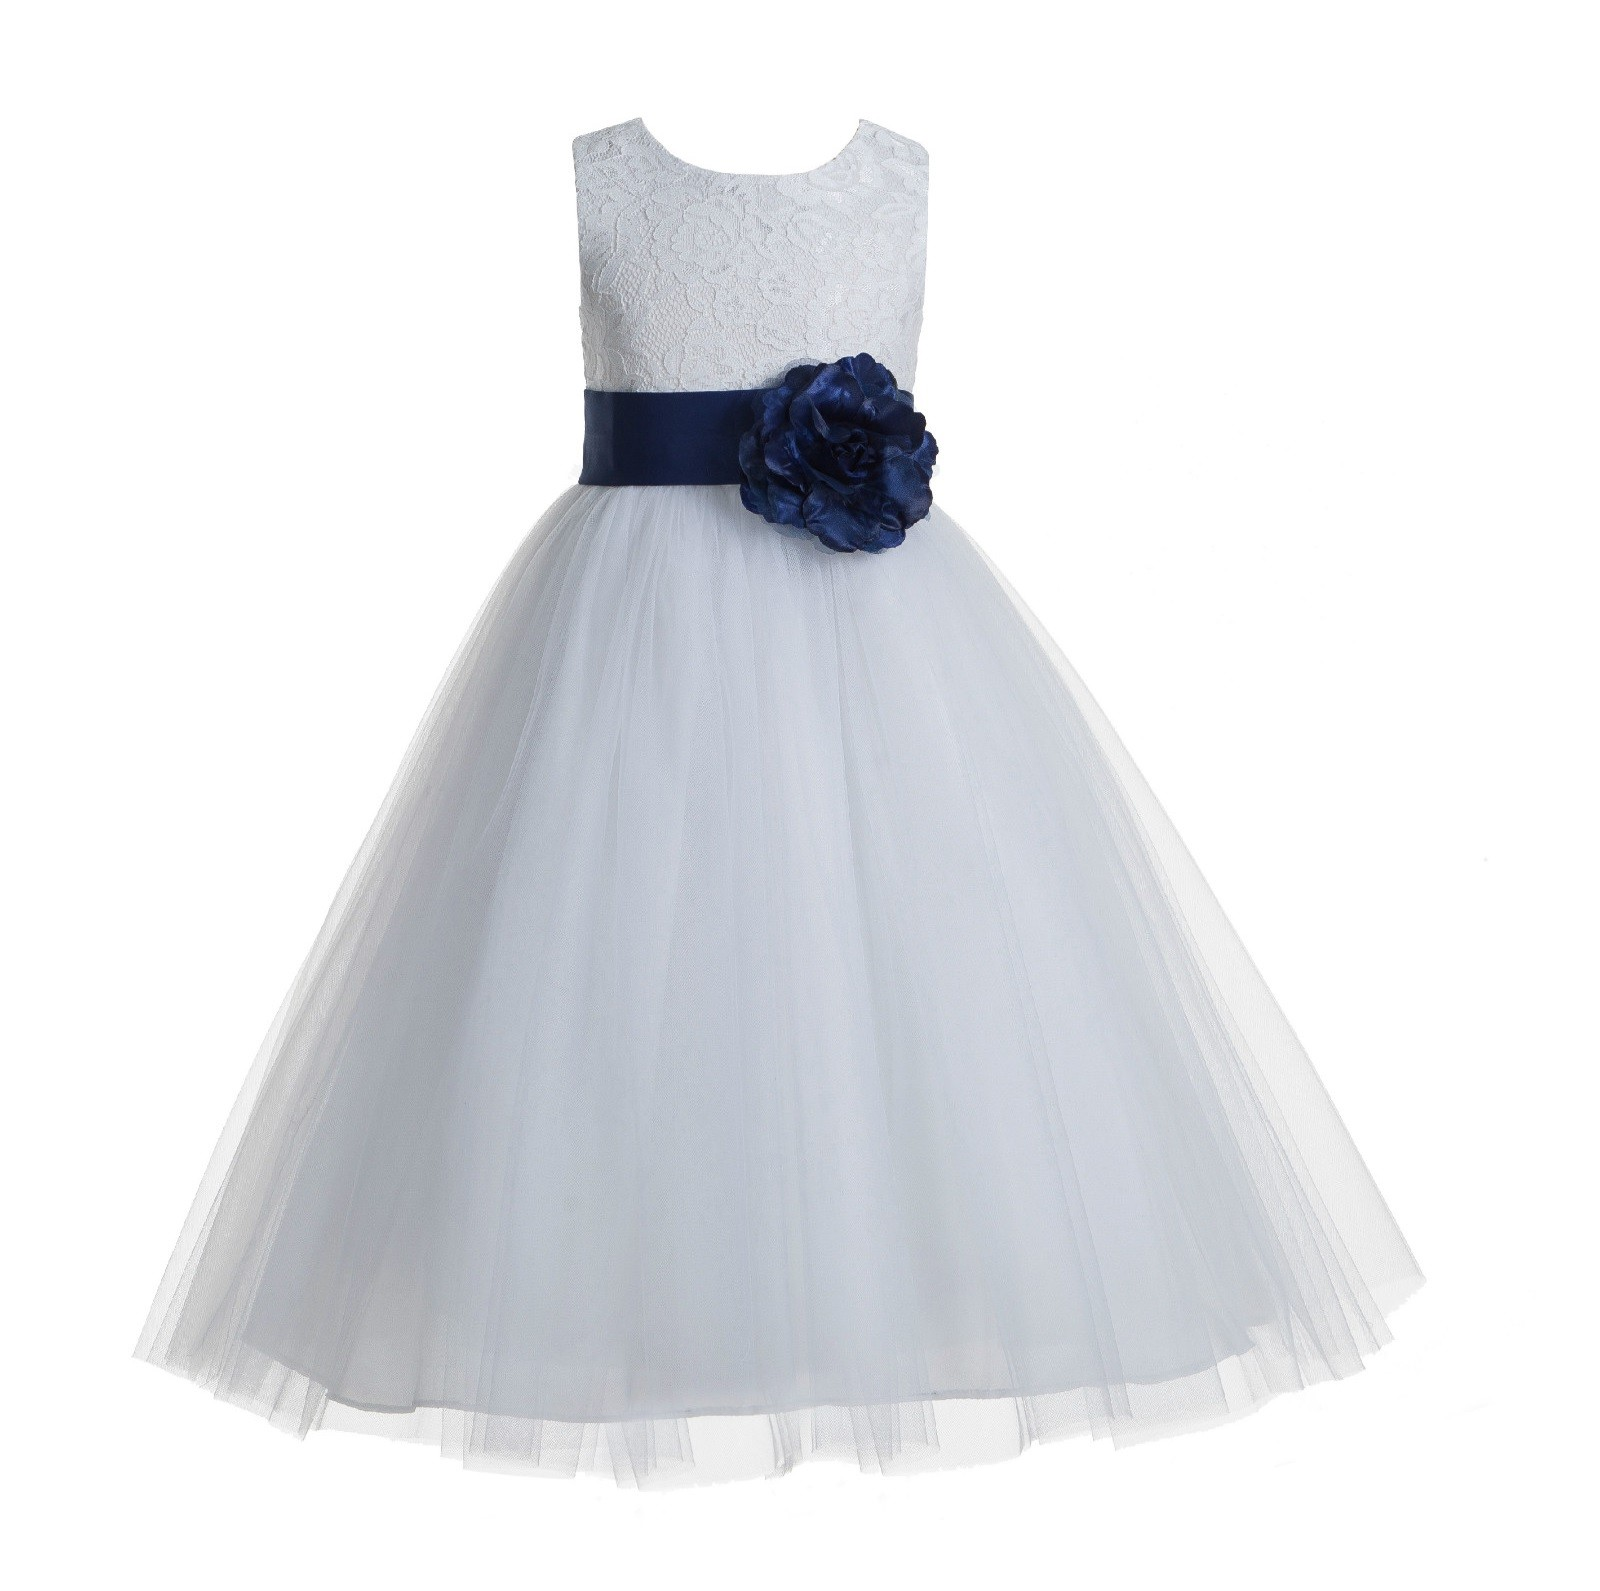 White navy blue floral lace heart cutout flower girl dress with white navy blue floral lace heart cutout flower girl dress with flower 172t izmirmasajfo